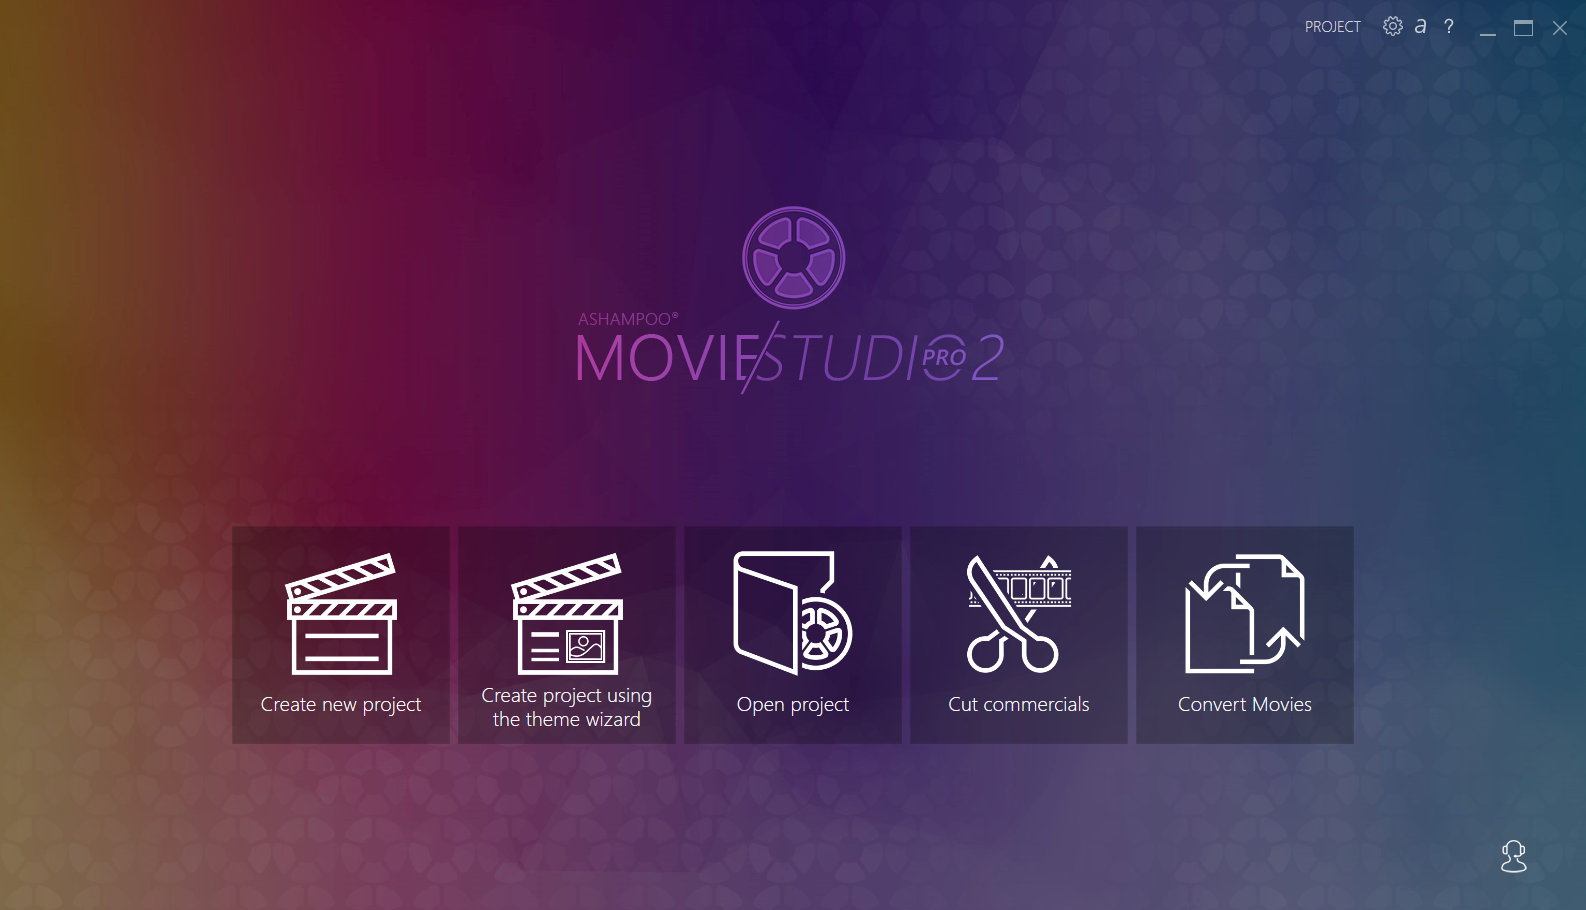 ashampoo movie studio pro 2 review ashampoo movie studio pro 2 the universal application to edit convert and create videos has been overhauled and now boast a range of new features